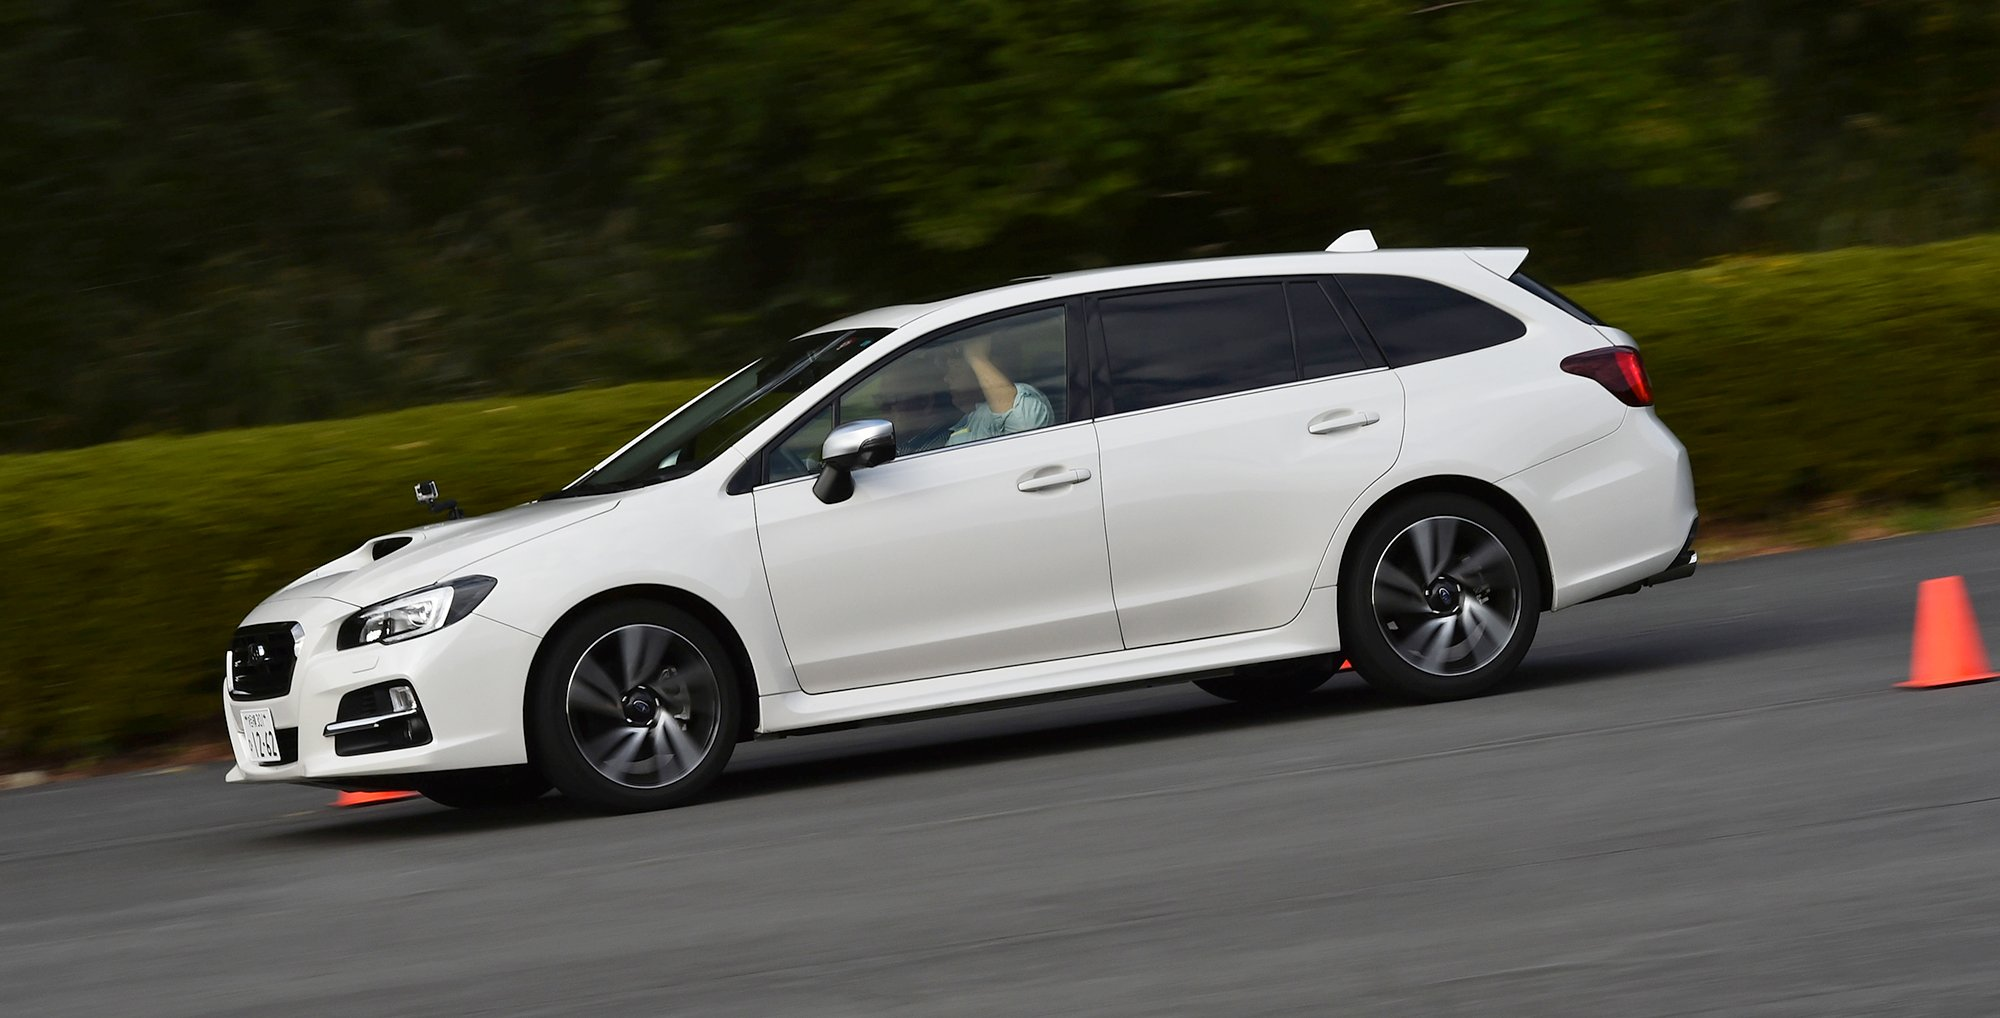 Subaru 2019 Wrx >> 2016 Subaru Levorg GT Review - photos | CarAdvice